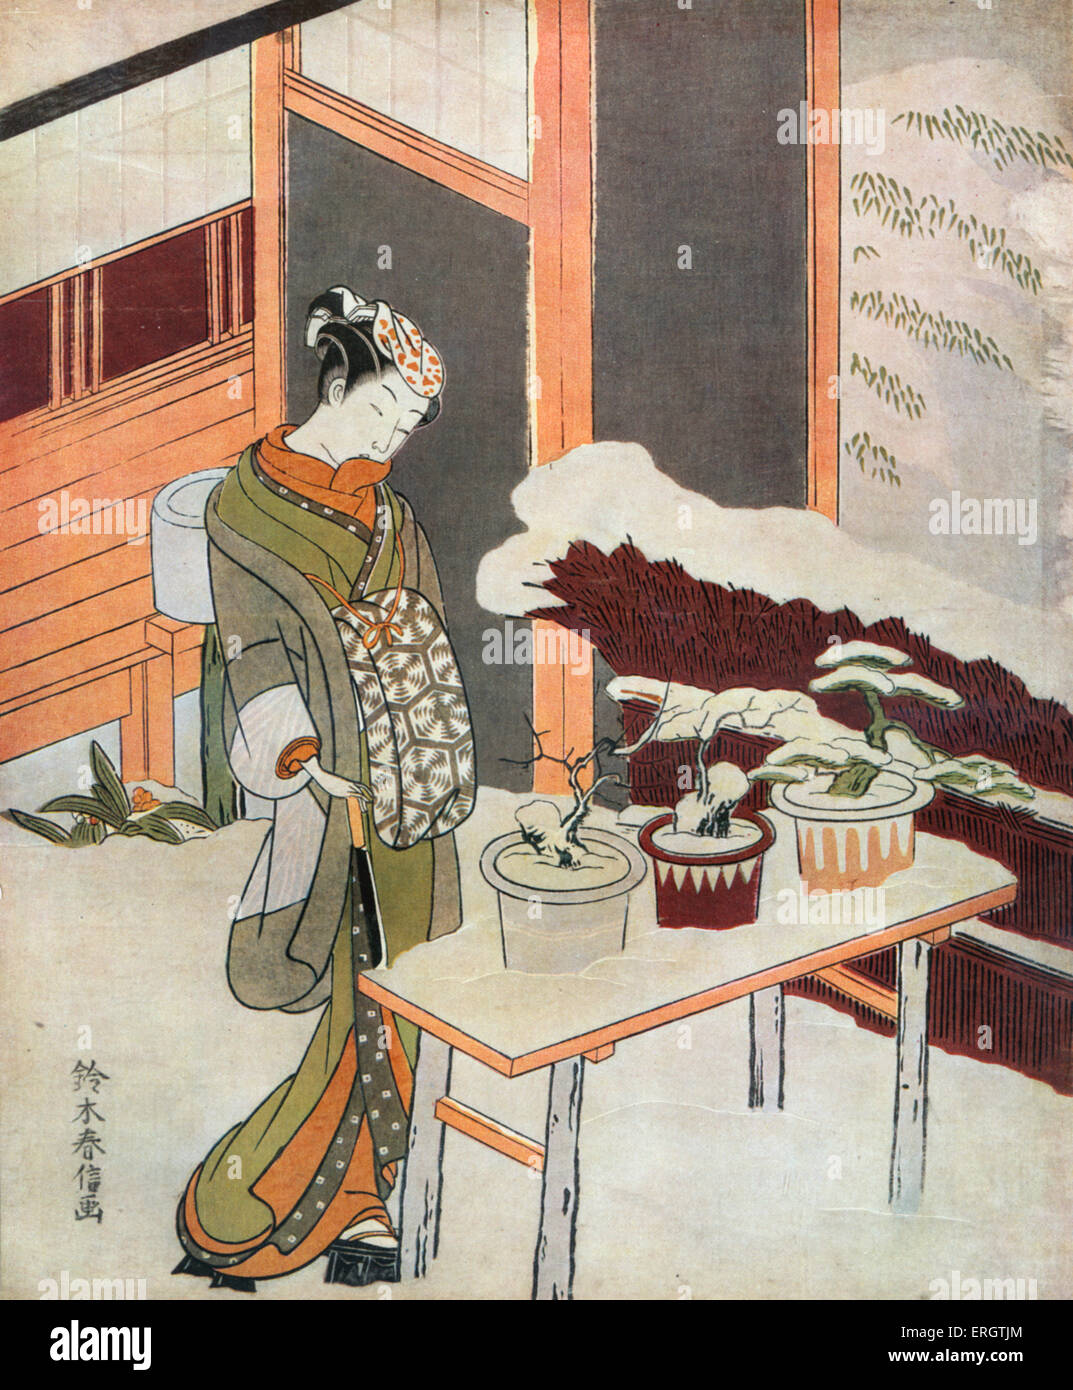 Young Japanese woman in kimono looking down at snow covered plants - print by Suzuki Harunobu, Japanese printmaker - Stock Image